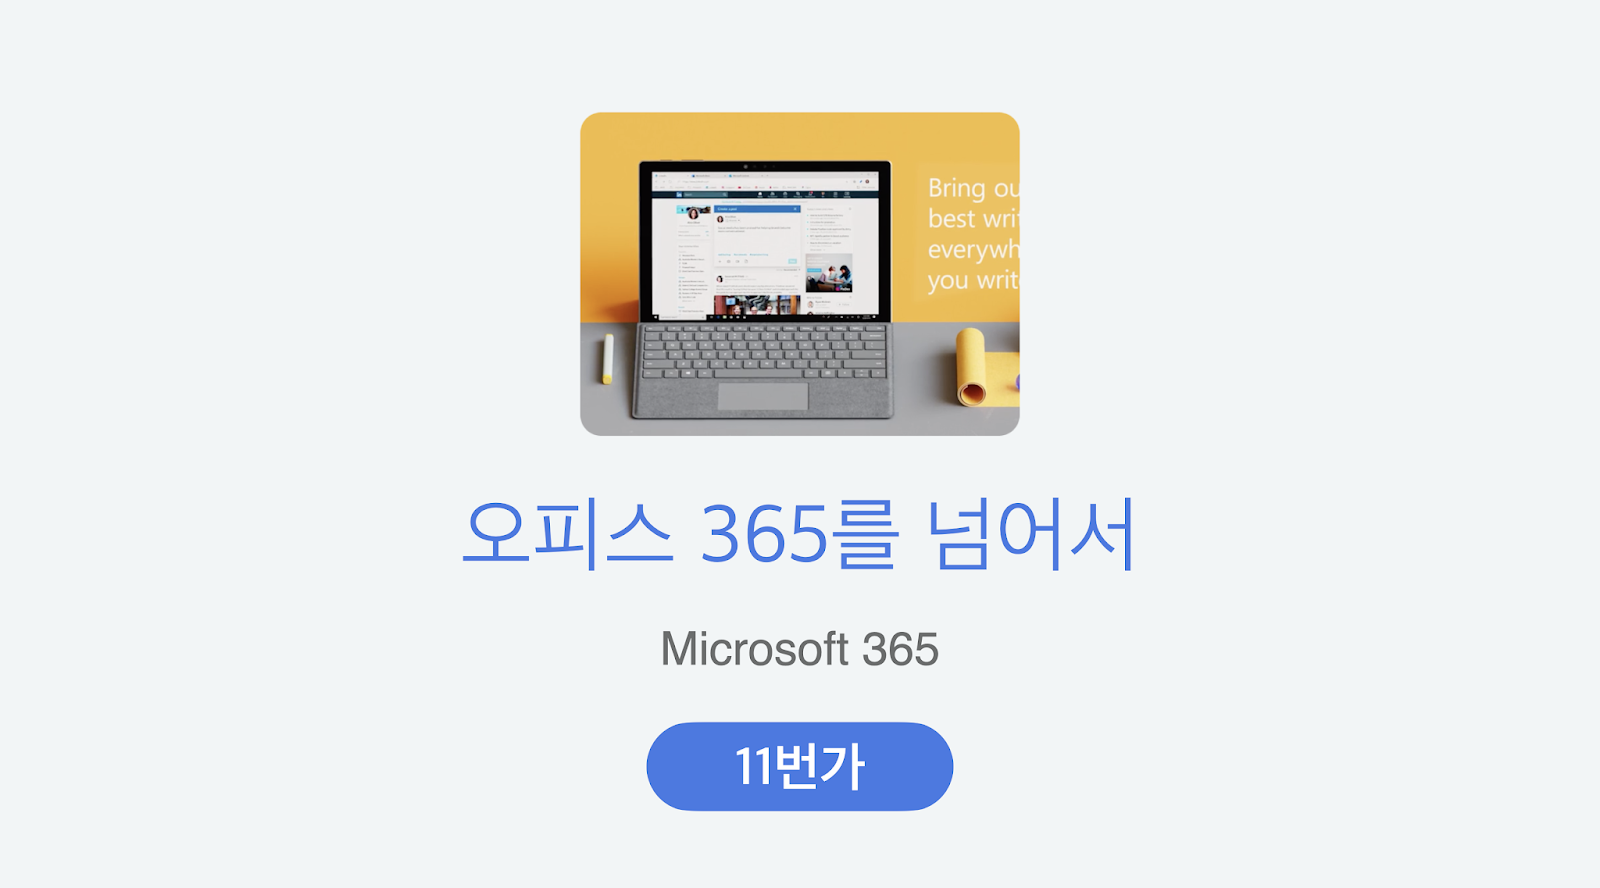 http://www.11st.co.kr/browsing/MallPlanDetail.tmall?method=getMallPlanDetail&planDisplayNumber=2032914&utm_source=Influencer&utm_medium=influencer&utm_campaign=fy20q4